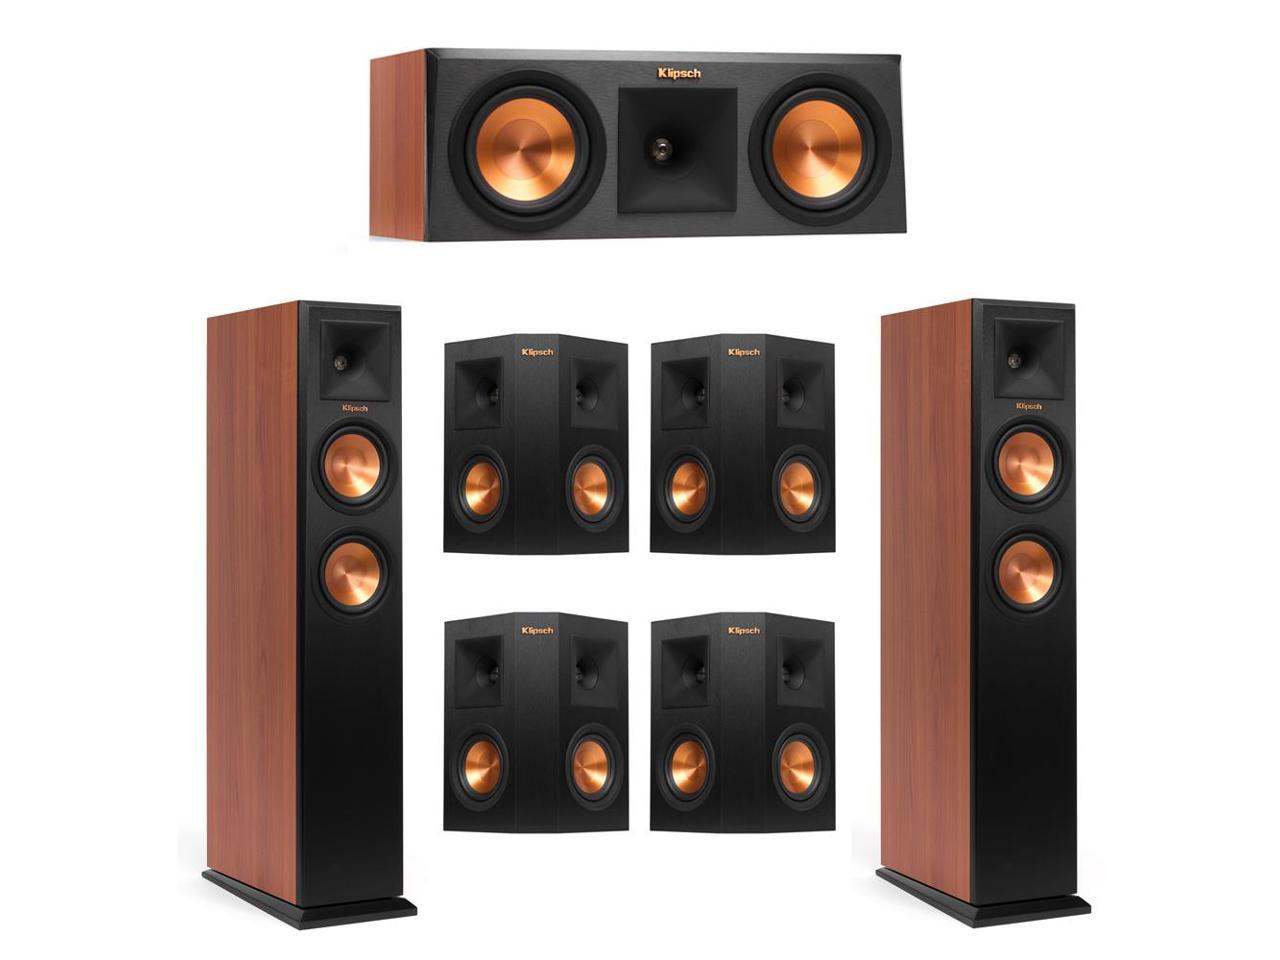 Klipsch 7.0 Cherry System with 2 RP-250F Tower Speakers, 1 RP-250C Center Speaker, 4 Klipsch RP-240S Surround Speaker + AudioQuest Bundle